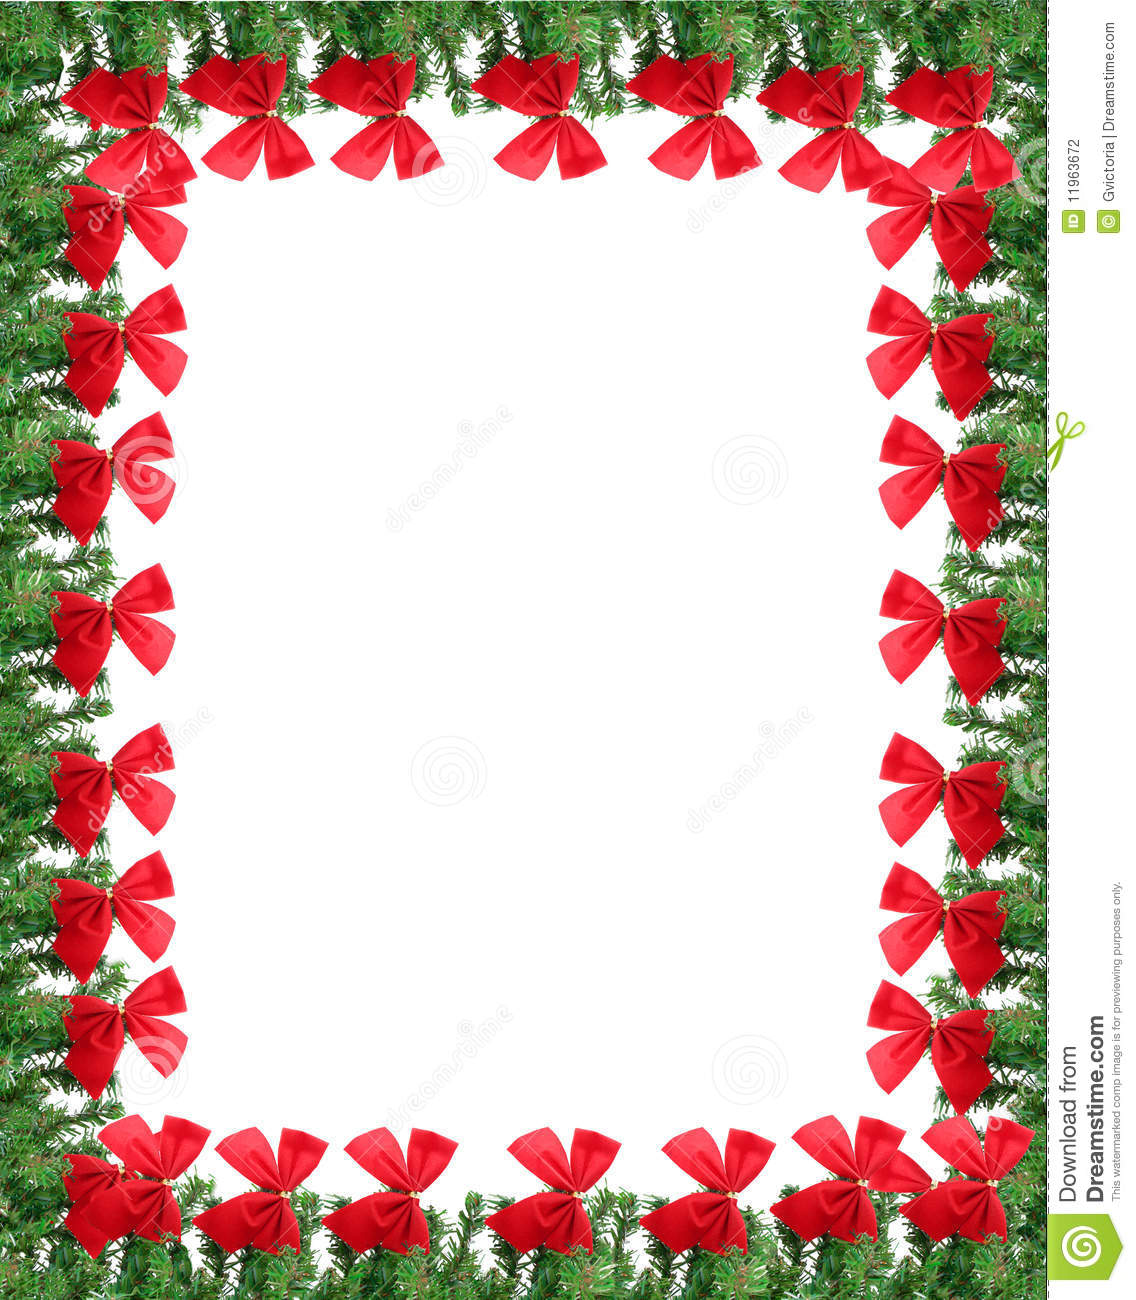 Pleasant Christmas Greeting Card Border Stock Photography Image 11963672 Easy Diy Christmas Decorations Tissureus